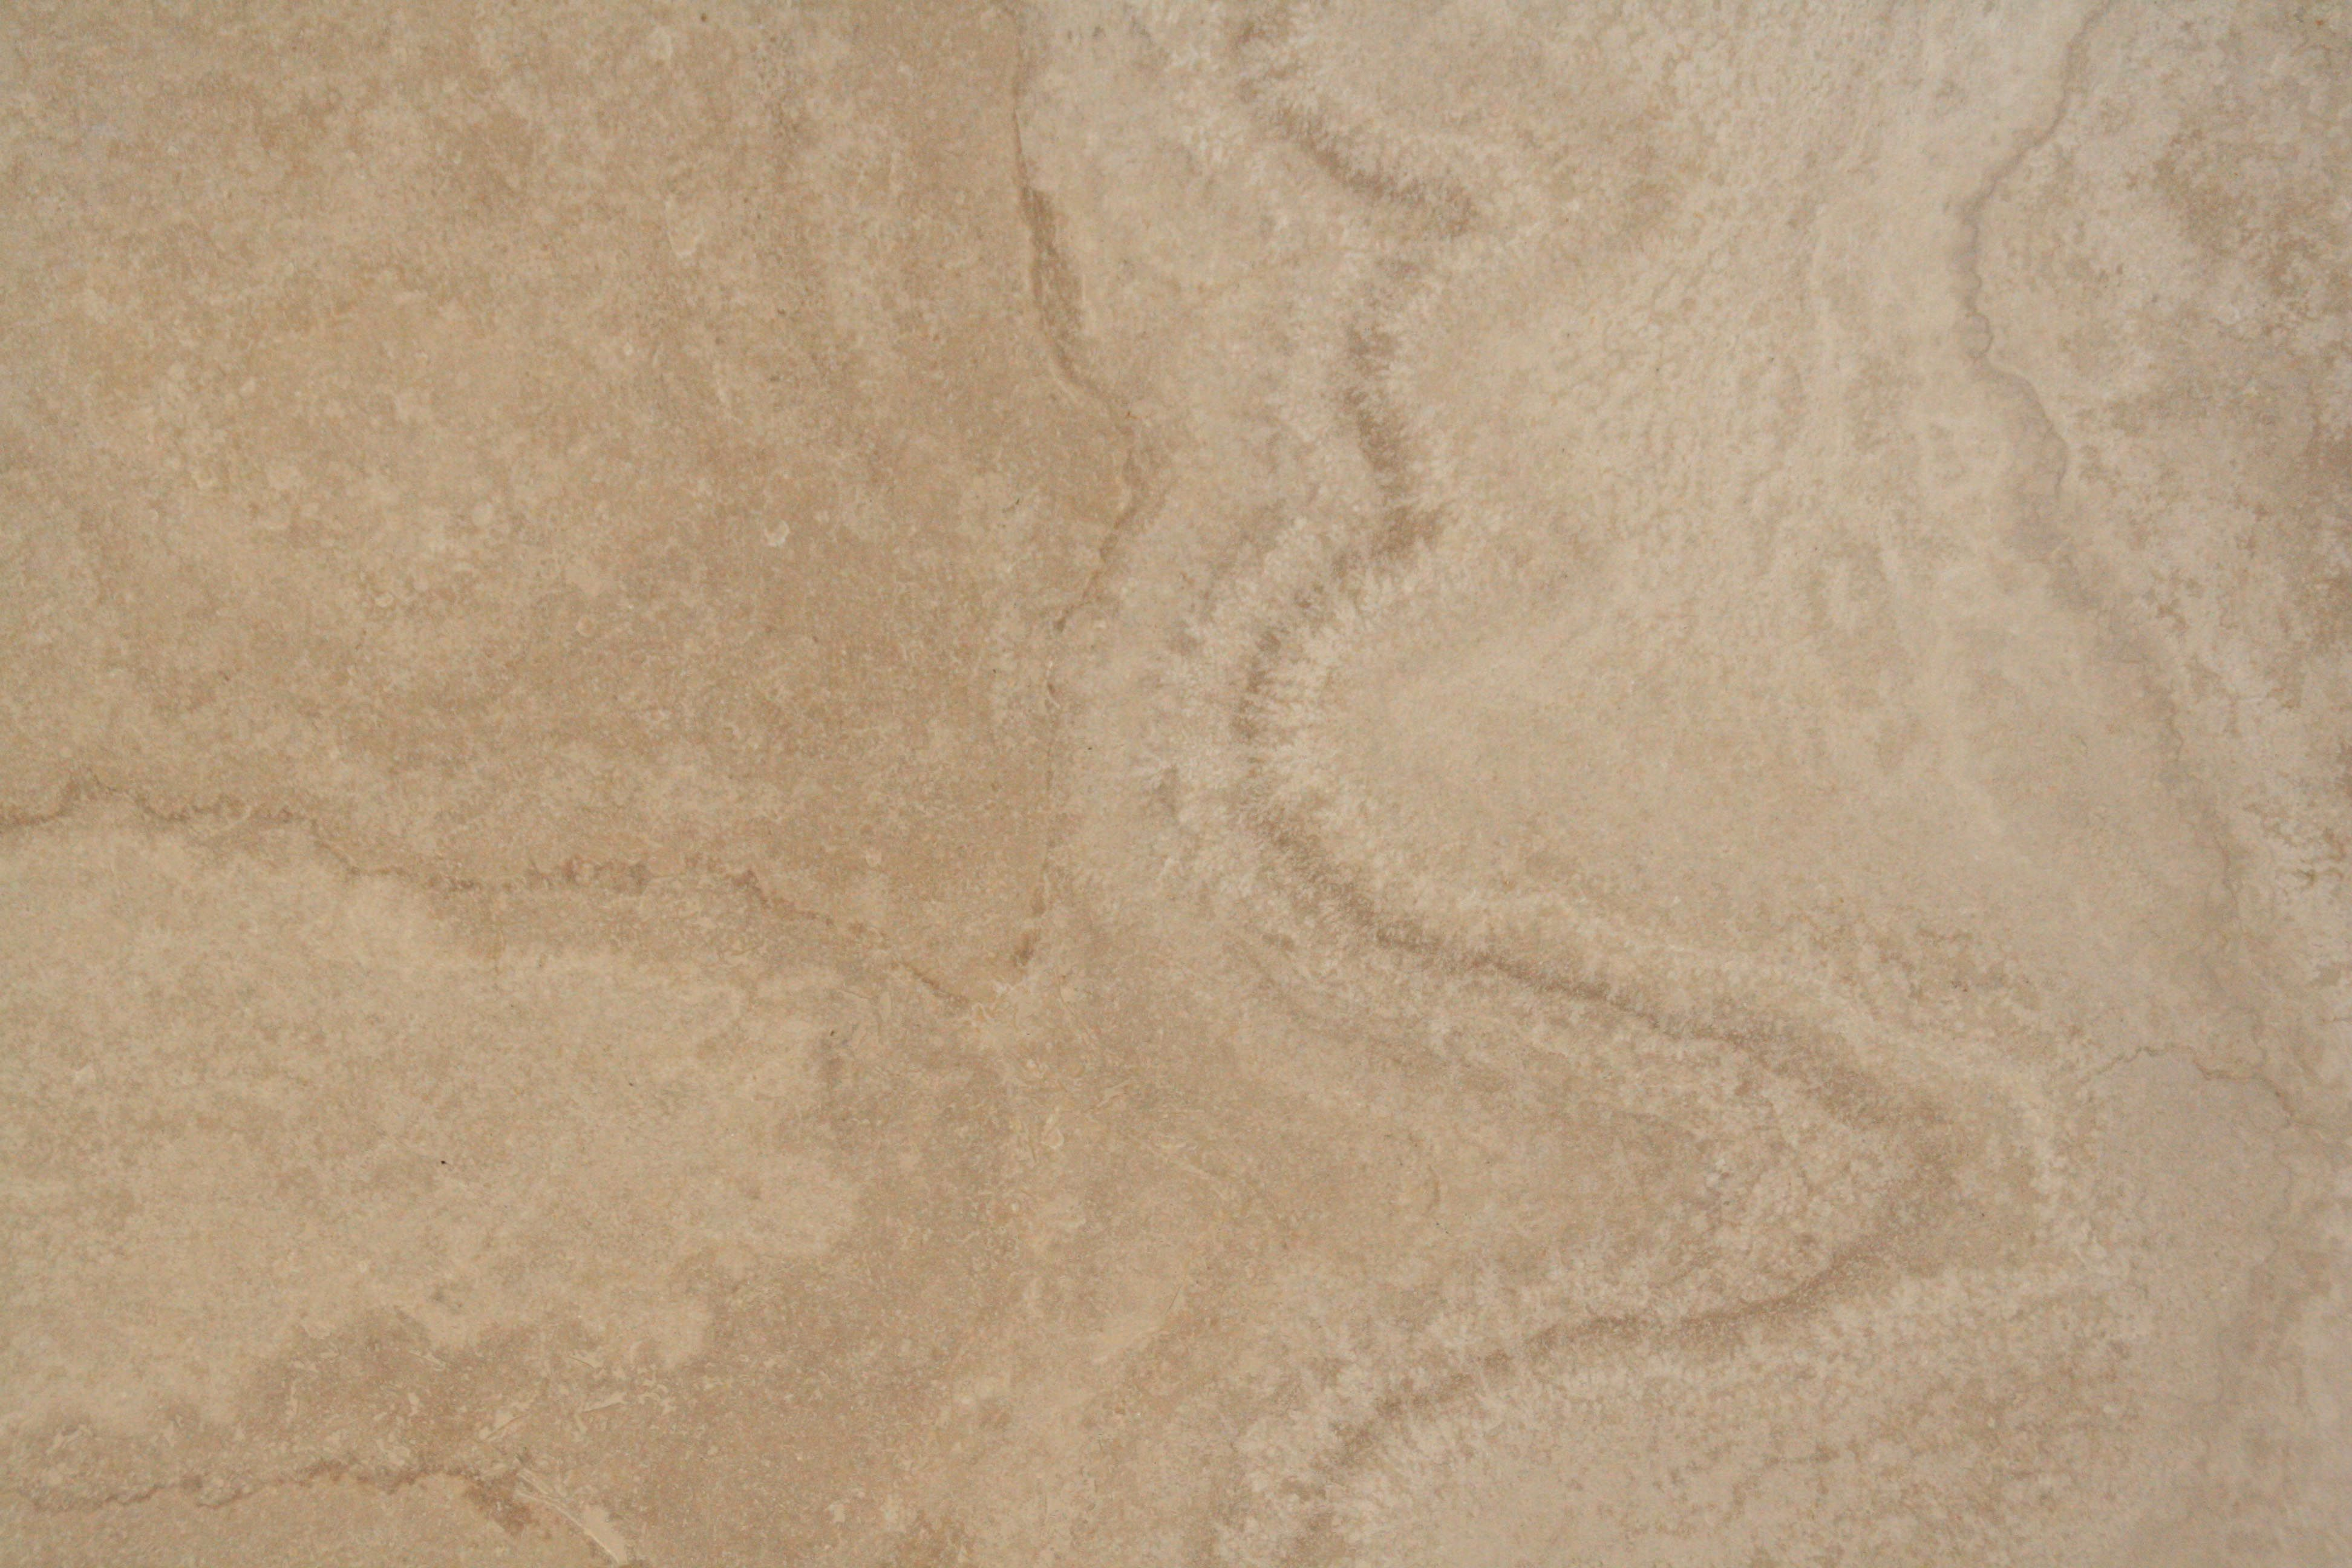 Light Brown Marble : Warm cream or a light brown marble the almost caramel